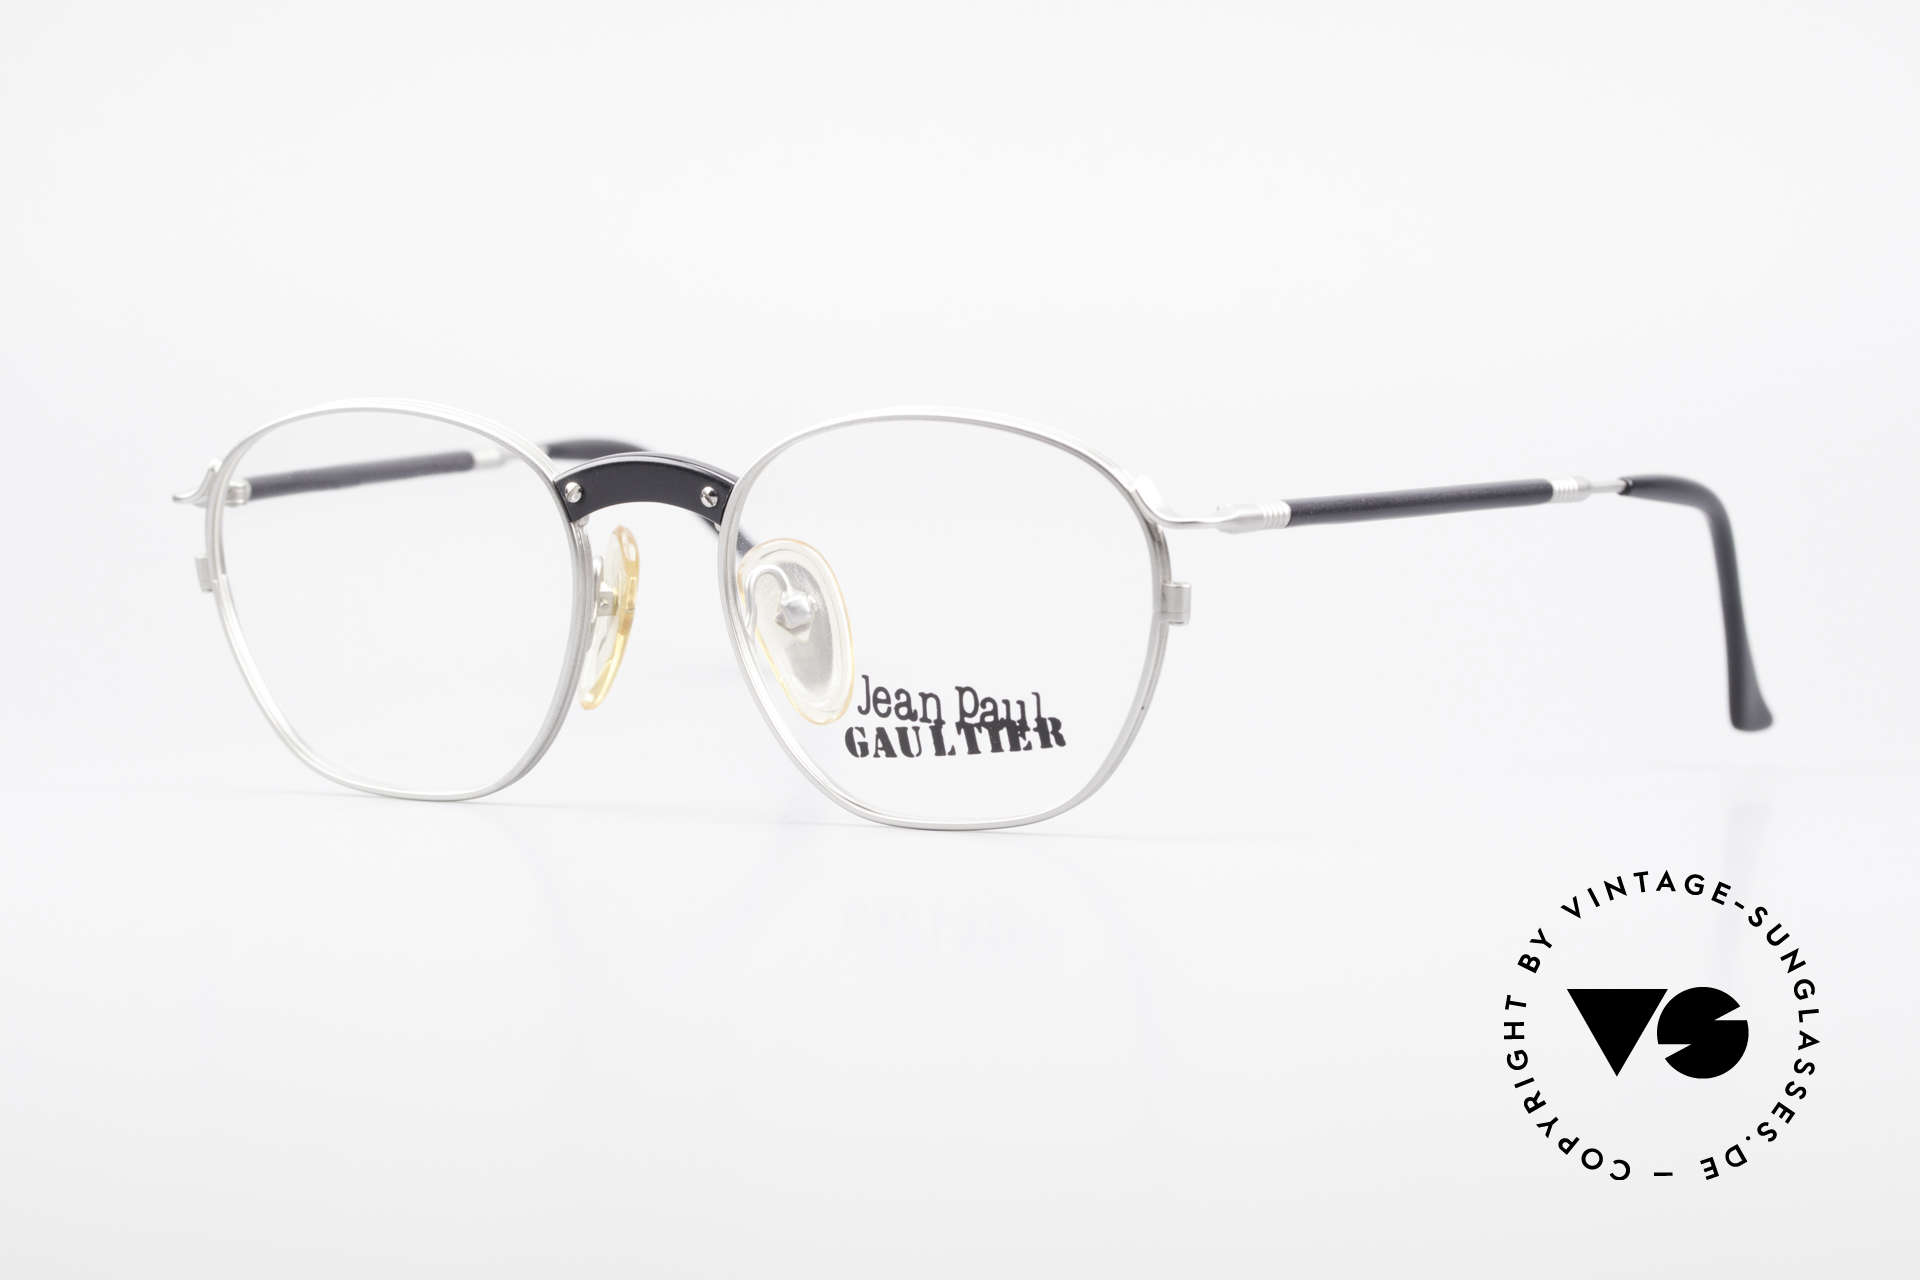 Jean Paul Gaultier 55-1271 Rare JPG Vintage Eyeglasses, vintage designer eyeglasses by Jean Paul GAULTIER, Made for Men and Women